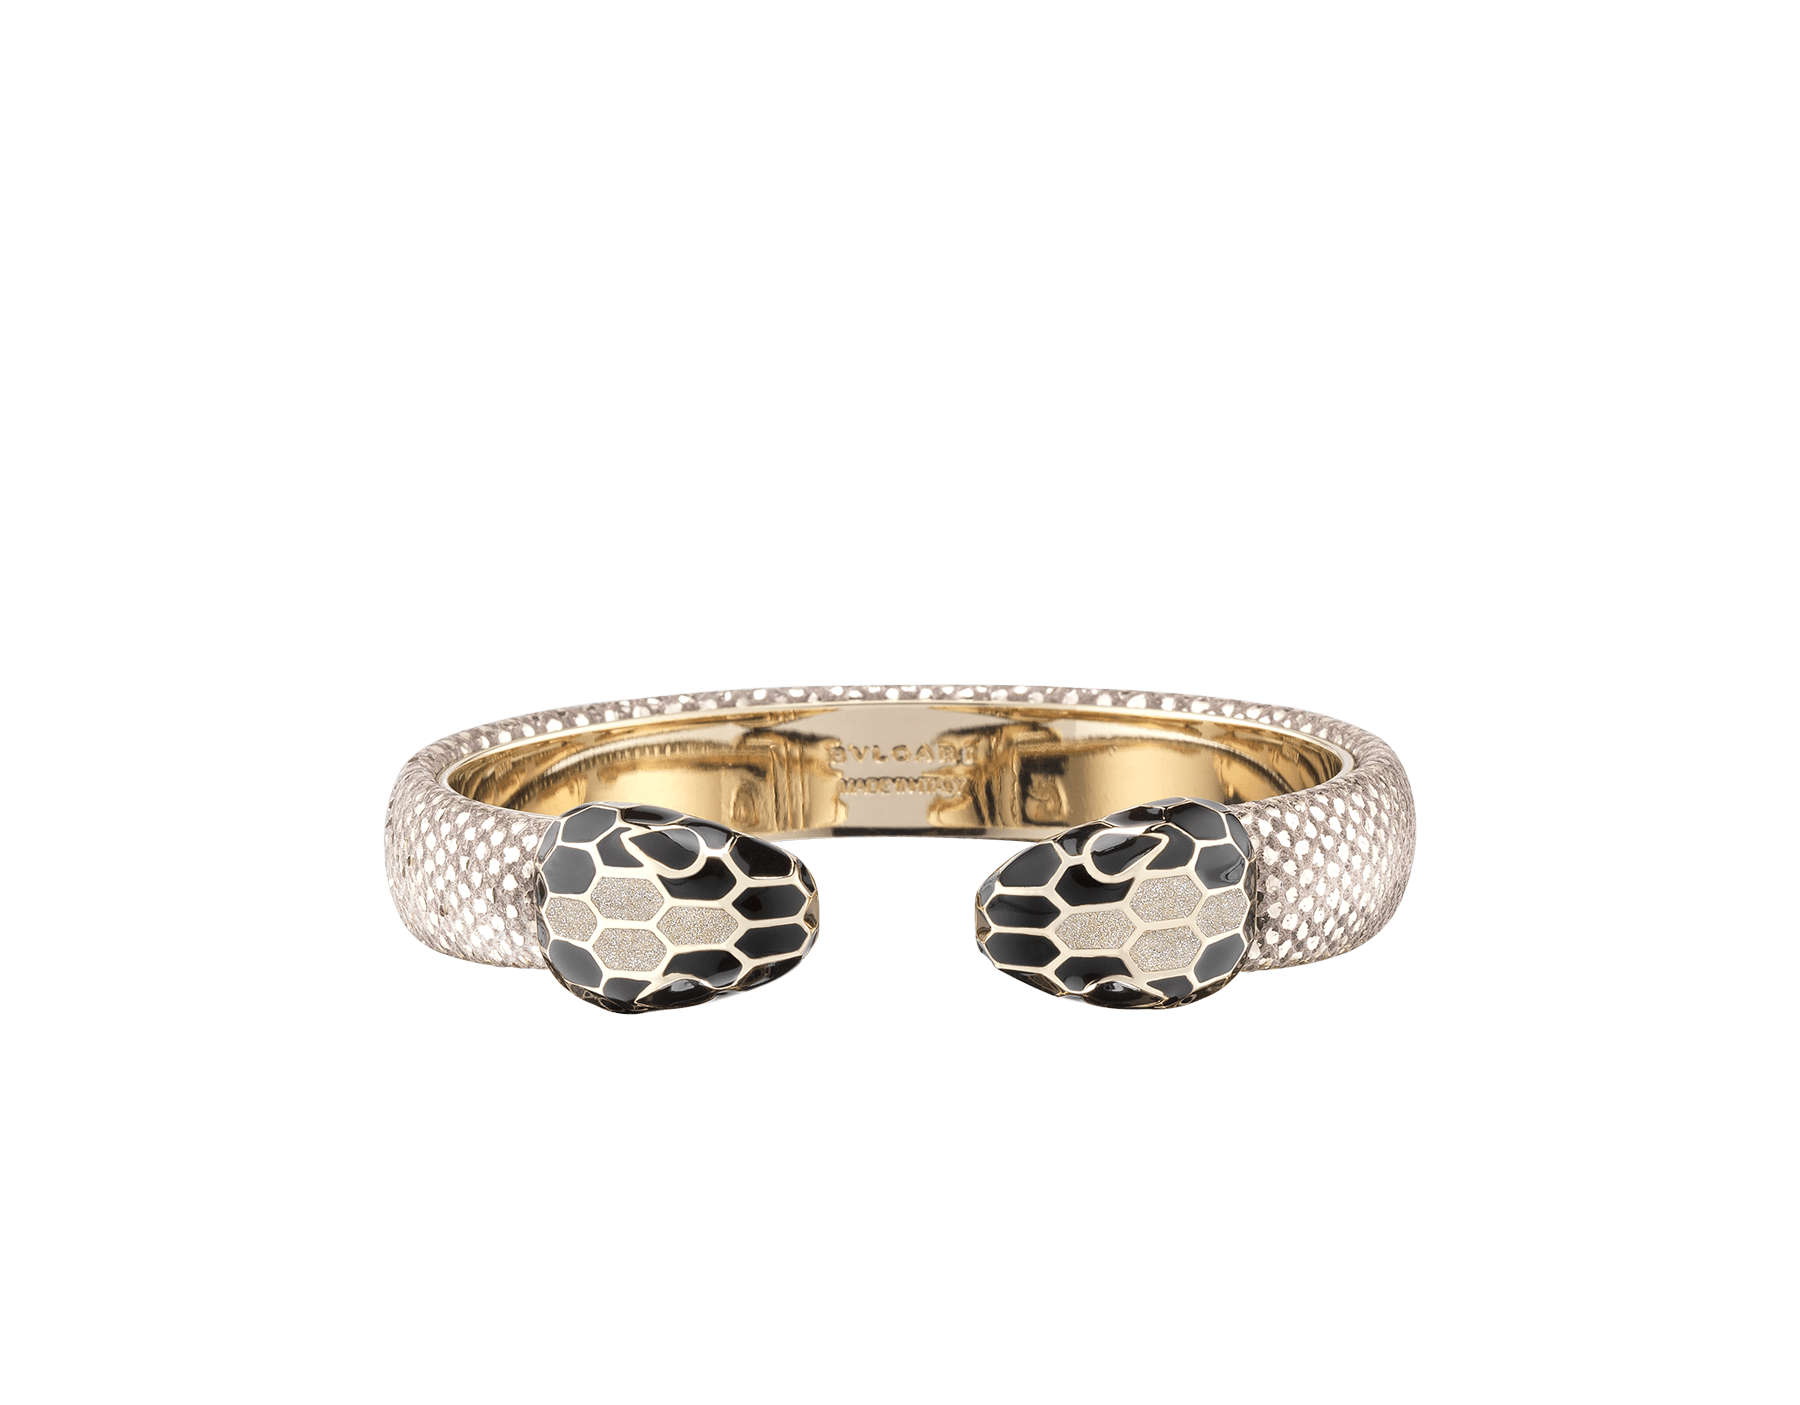 Serpenti Forever bangle bracelet in milky opal metallic karung skin, with brass light gold plated hardware. Iconic contraire snakehead décor in black and glitter milky opal enamel, with black enamel eyes. SPContr-MK-MO image 1